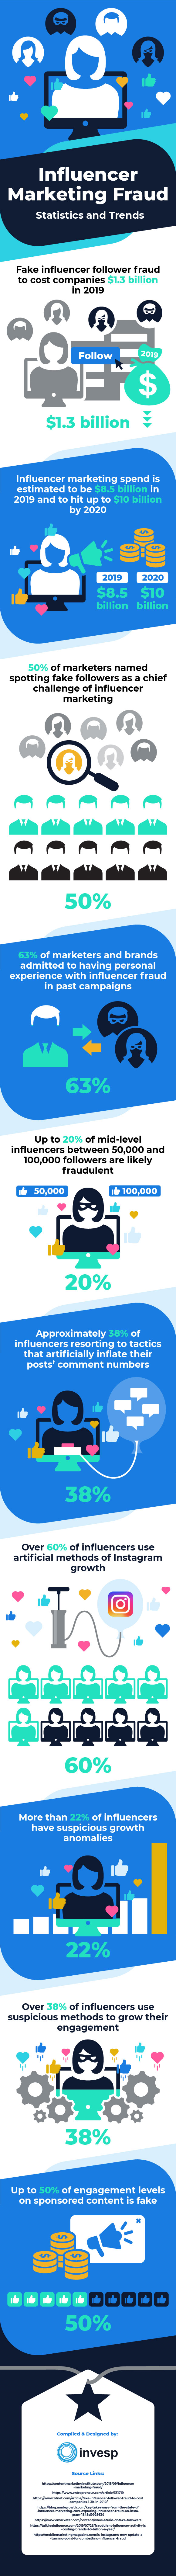 Influencer Marketing Fraud – Statistics and Trends